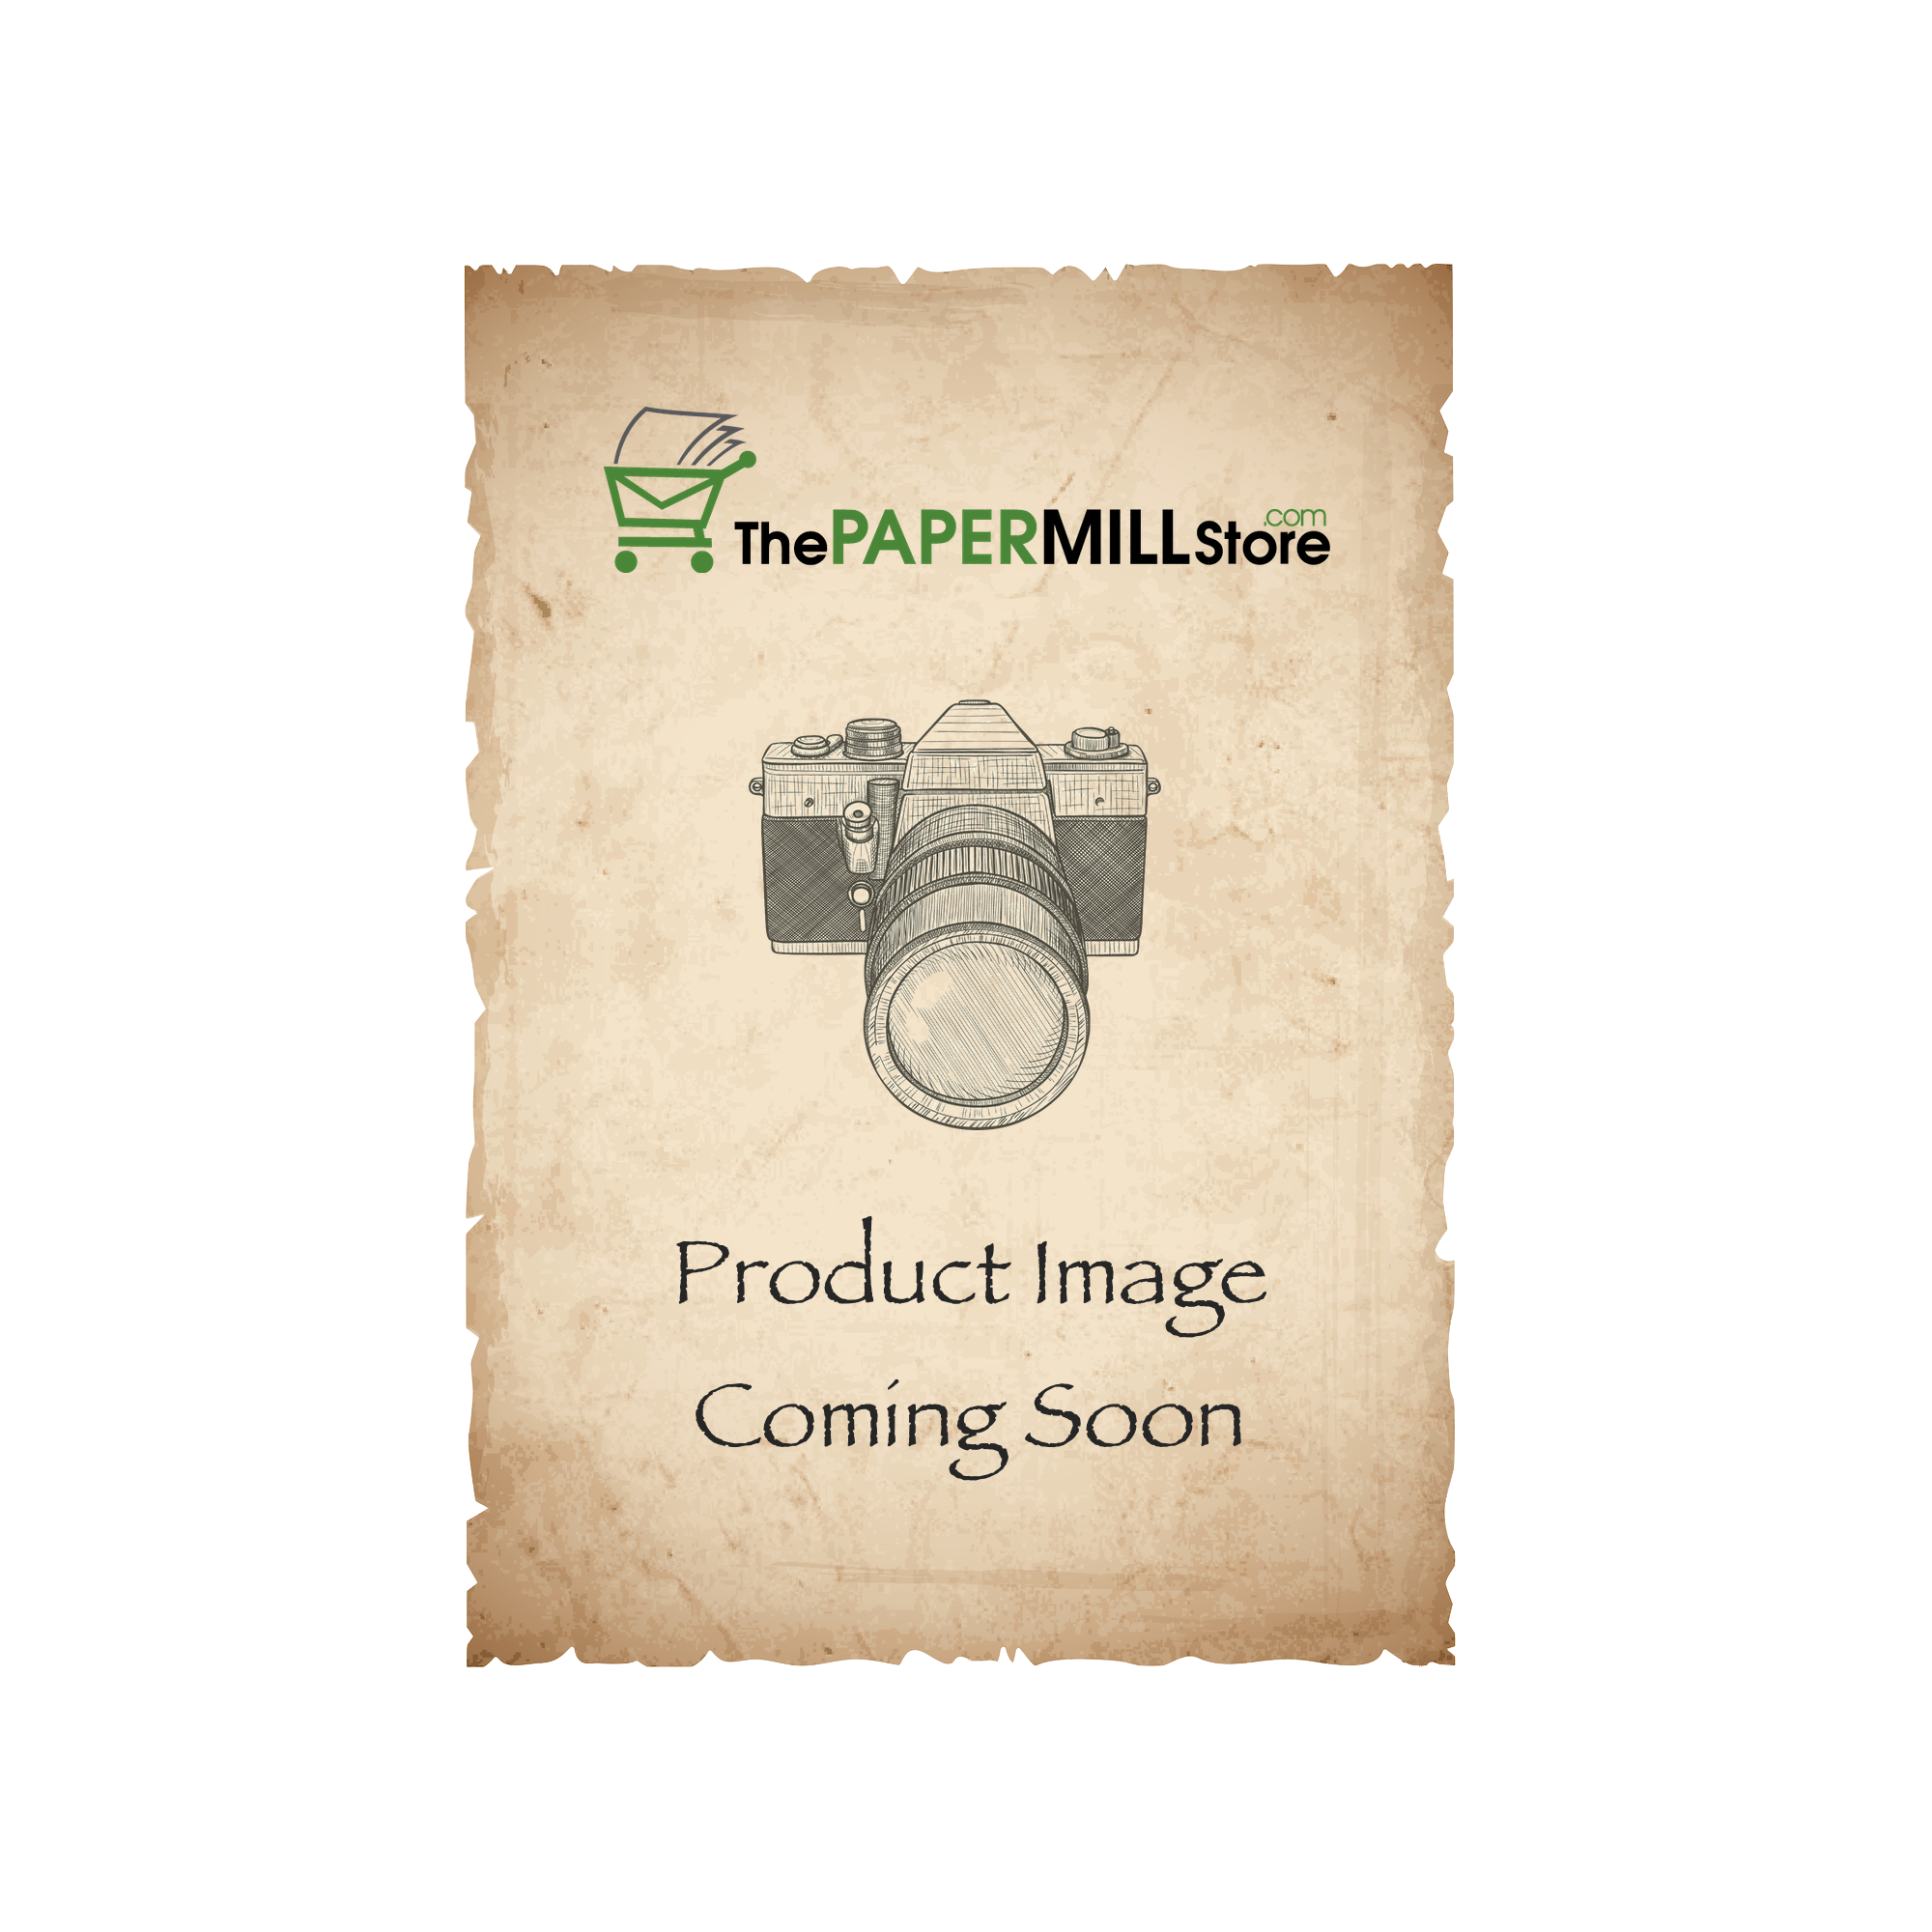 Loop Inxwell i-Tone Eco Cream Paper - 18 x 12 in 80 lb Text Vellum  100% Recycled 500 per Ream